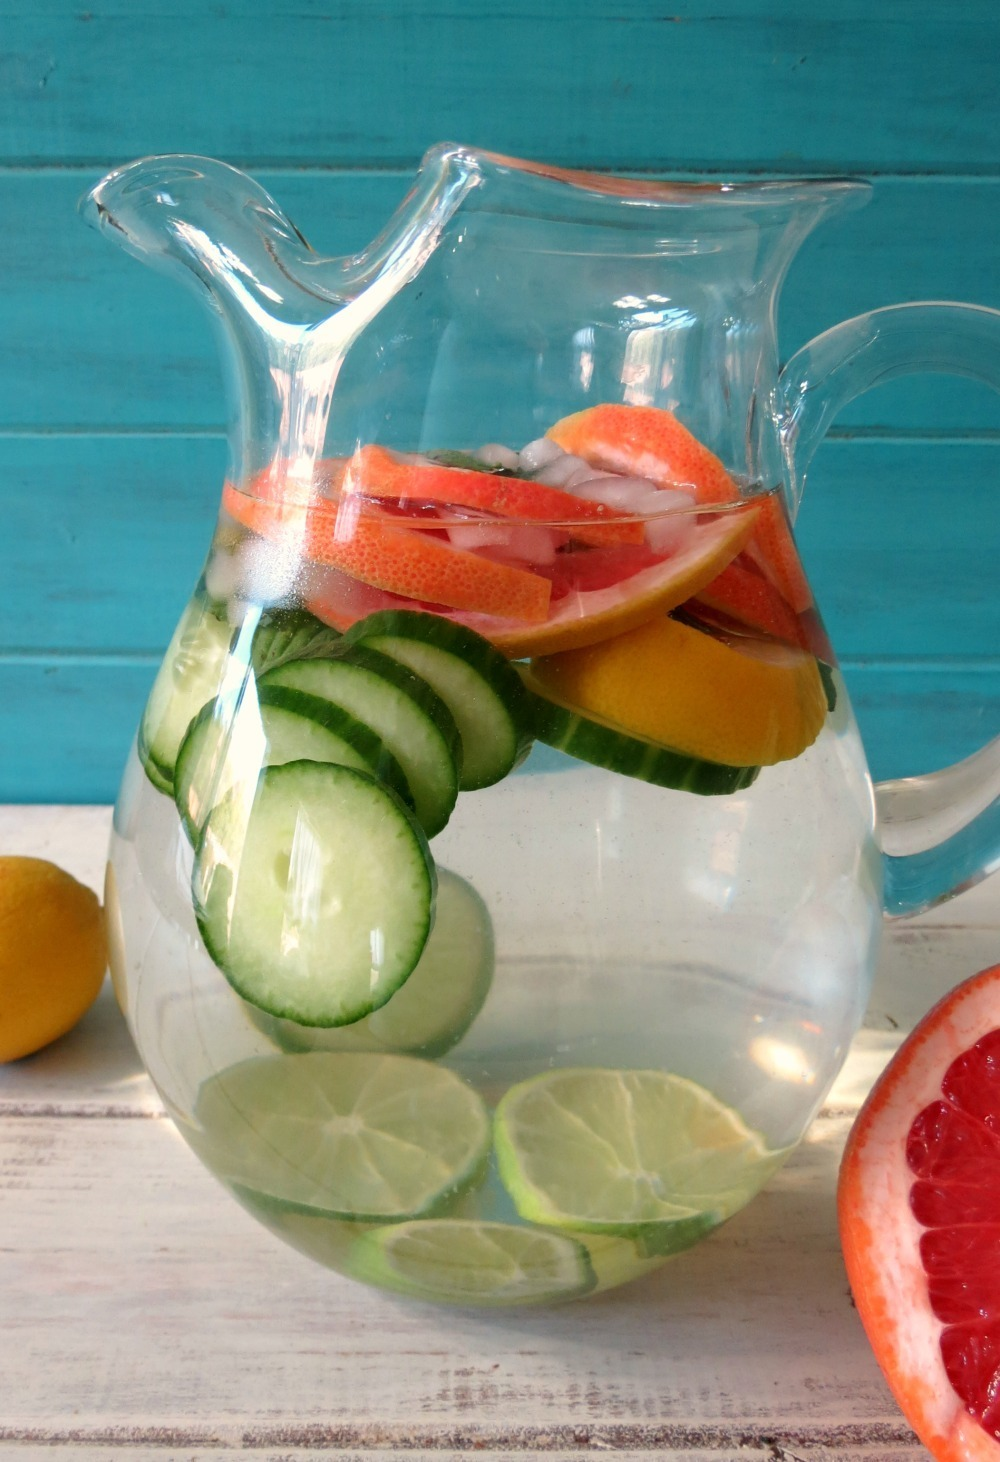 Fruity Detox Water. This delicious detox water has strawberries and kiwis and is the perfect summer drink. You will need 2 liters of water, a couple of strawberries and a couple of kiwis. Just chop your kiwis and strawberries, add to your water and sit in the fridge for a couple of hours to let it seep.